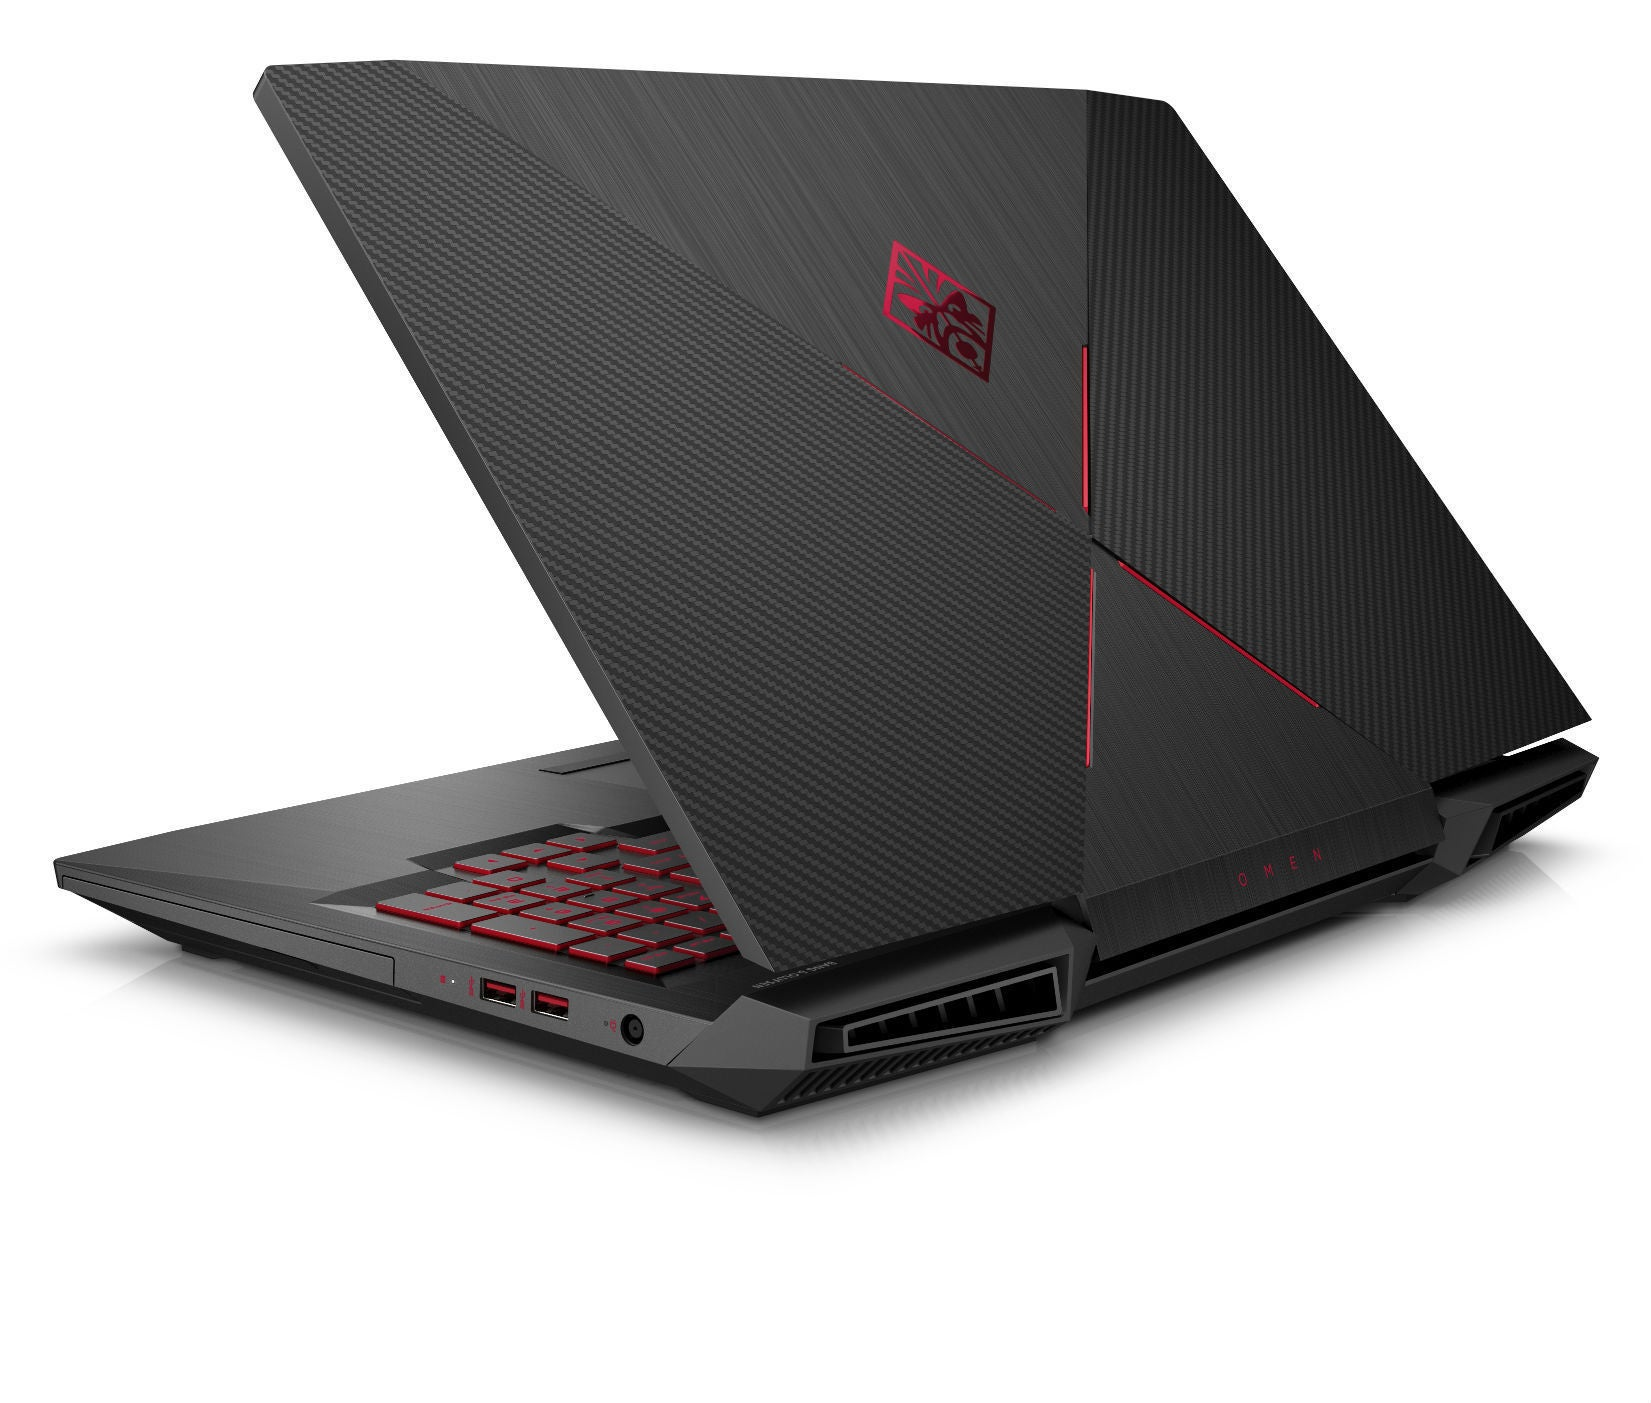 Image Result For Gaming Laptop Not Worth It